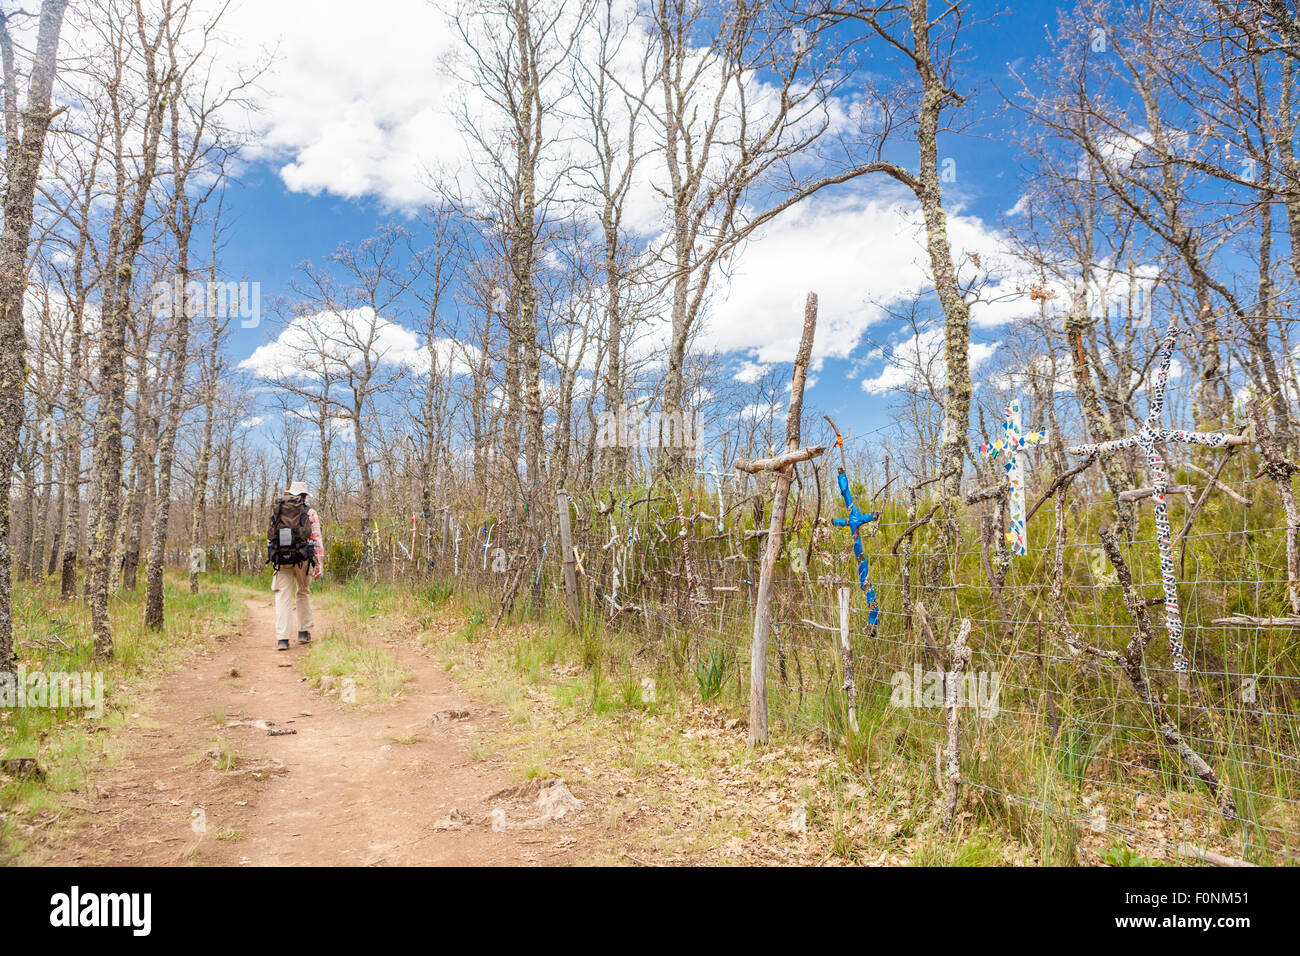 Way of St. James near El Ganso village, Leon, Spain - Stock Image